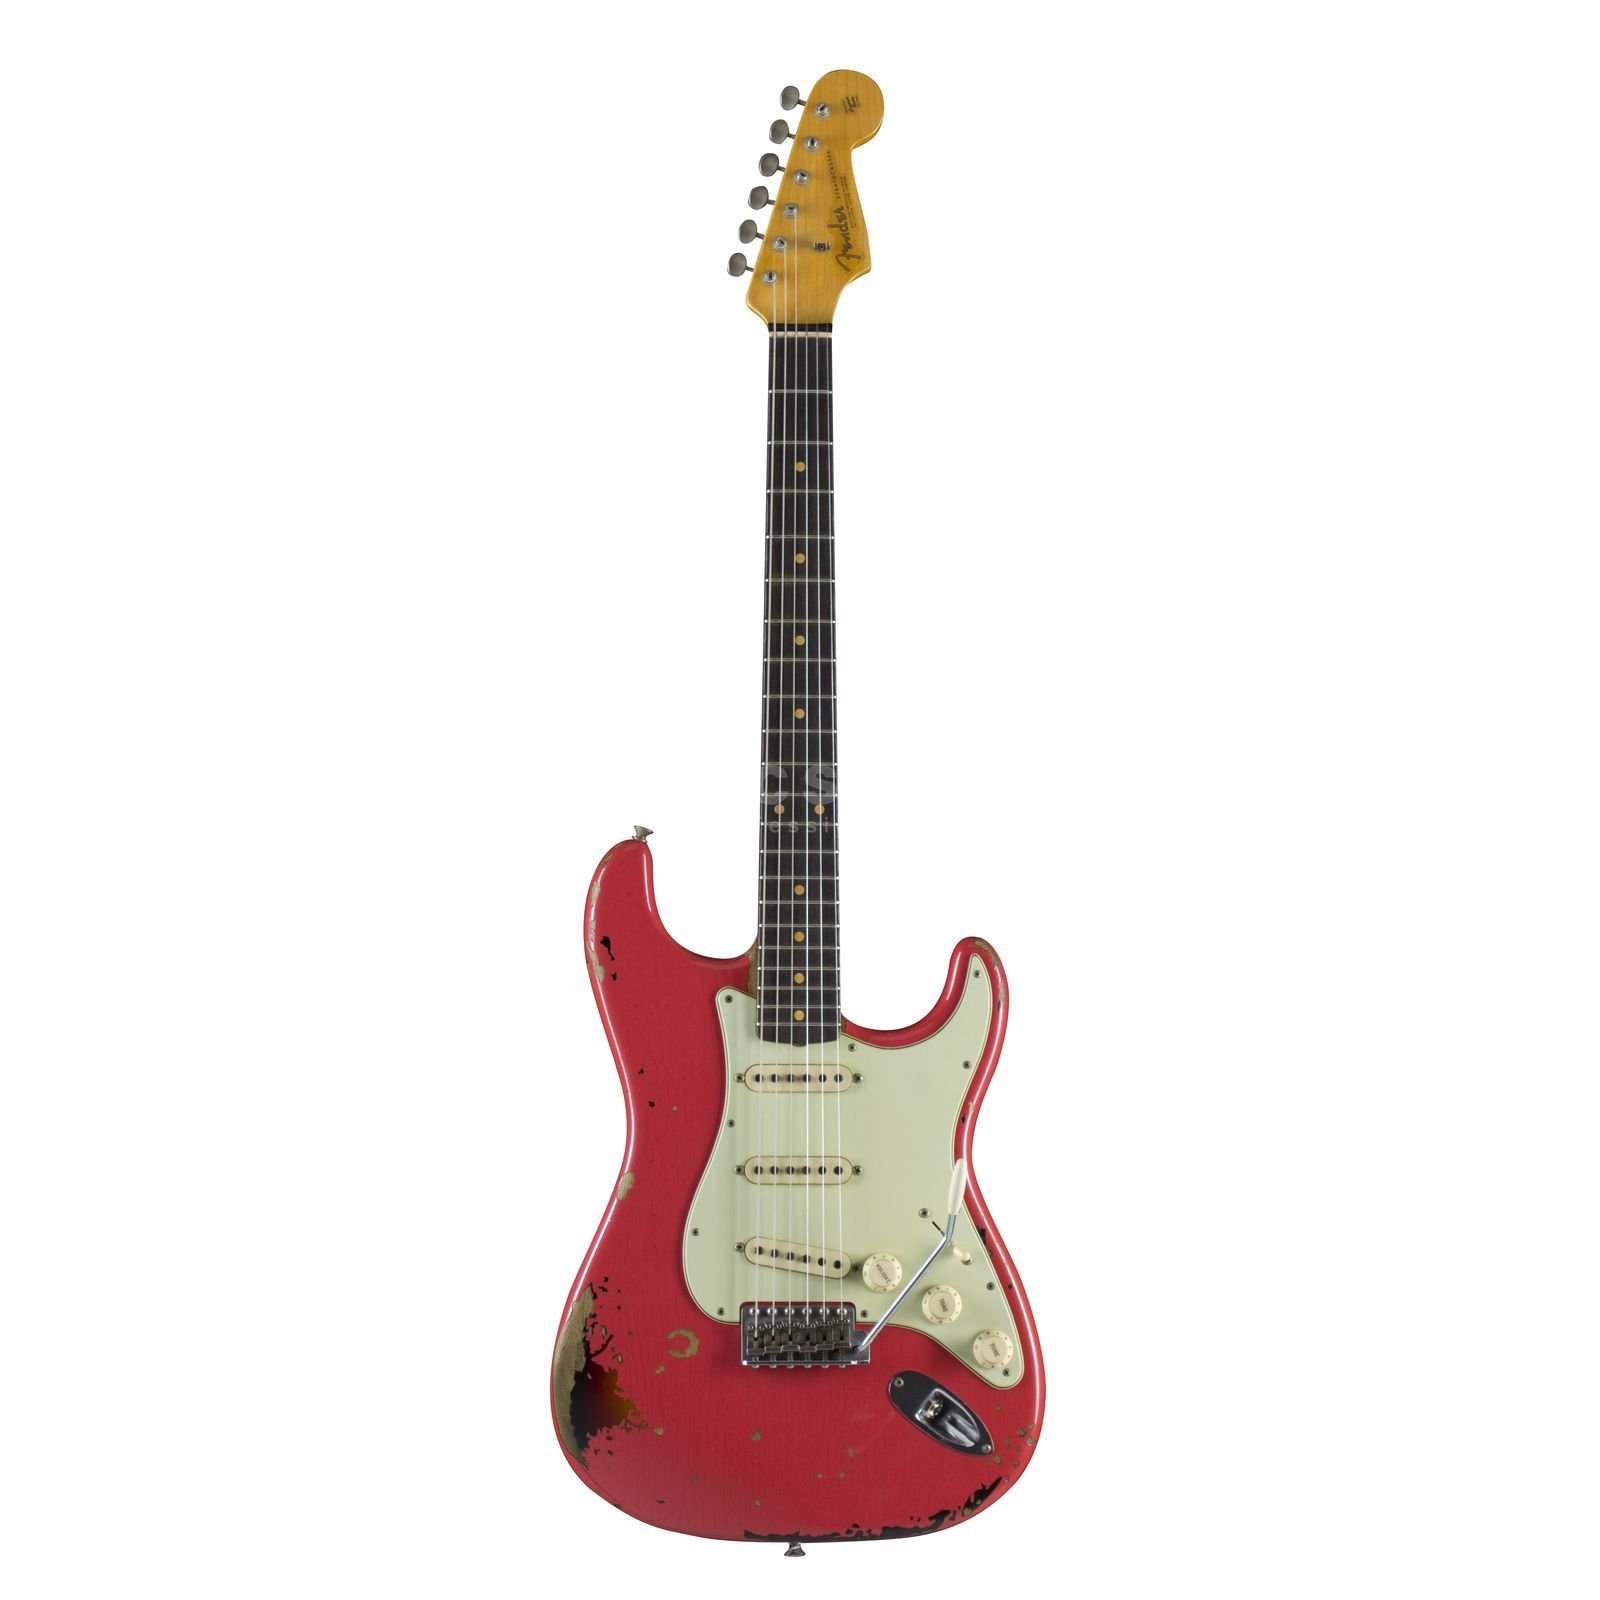 Fender Michael Landau 1963 Relic Stratocaster Fiesta Red over 3-Color Sunburst Produktbild